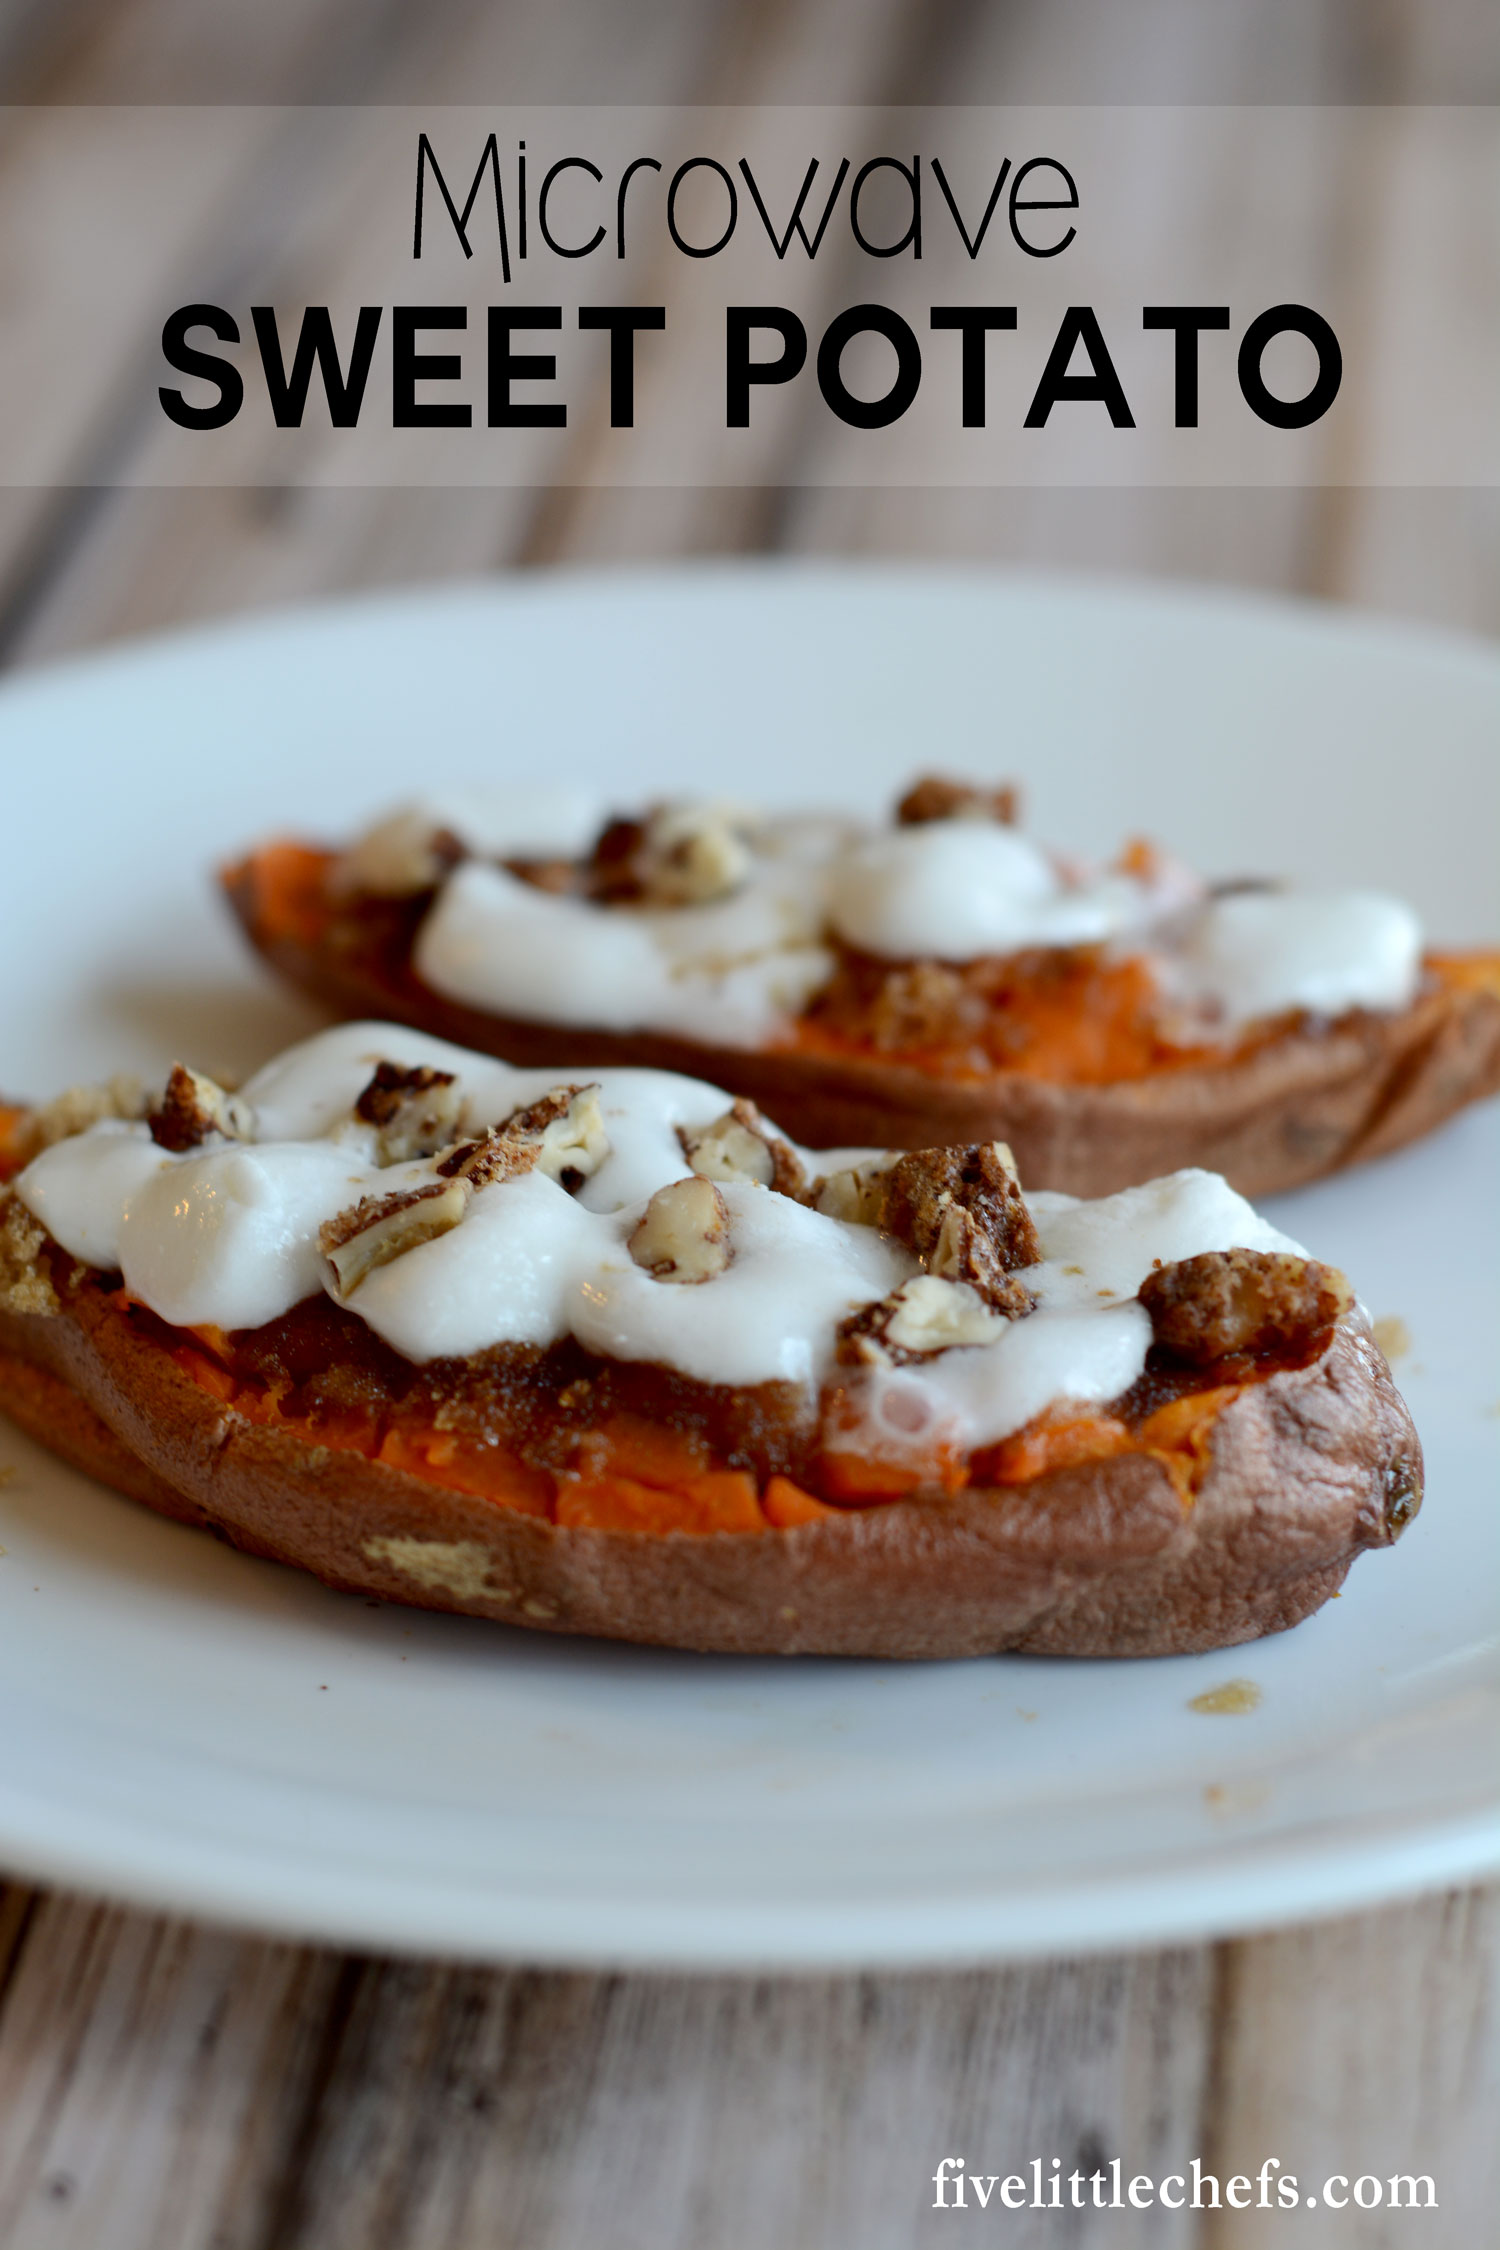 This Microwave Baked Sweet Potato recipe is easy and quick to make not just for Thanksgiving but for any time of the year. One sweet potato can serve 2 people. This is a great last minute side dish with amazing results!